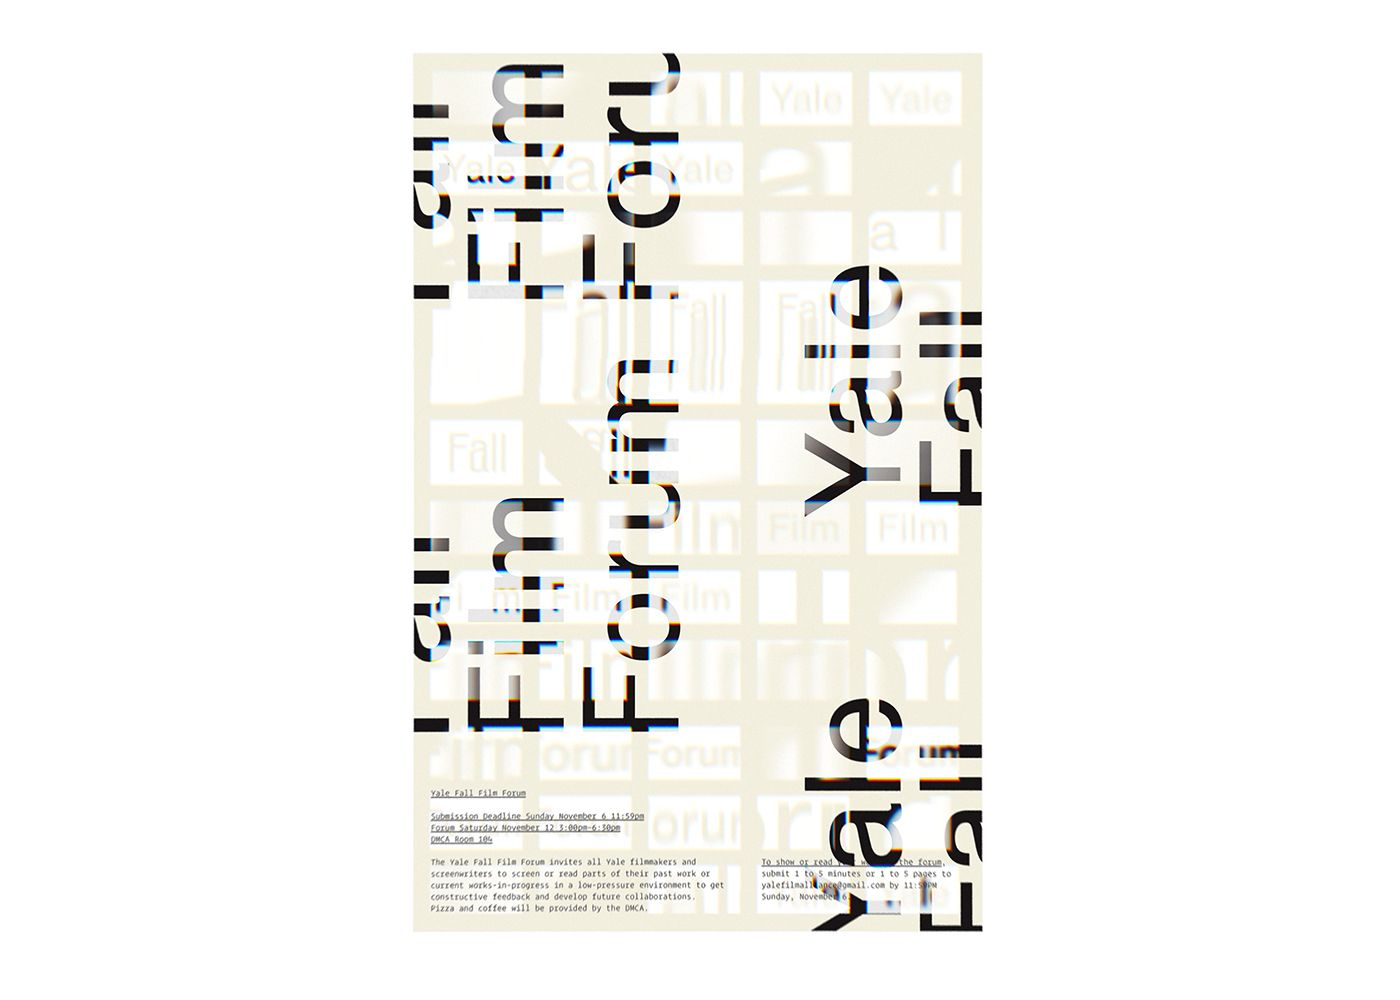 Minimalist Swiss International style poster for the Yale Fall Film Forum. Distorted film frames are lightly tiled across the surface of the poster.